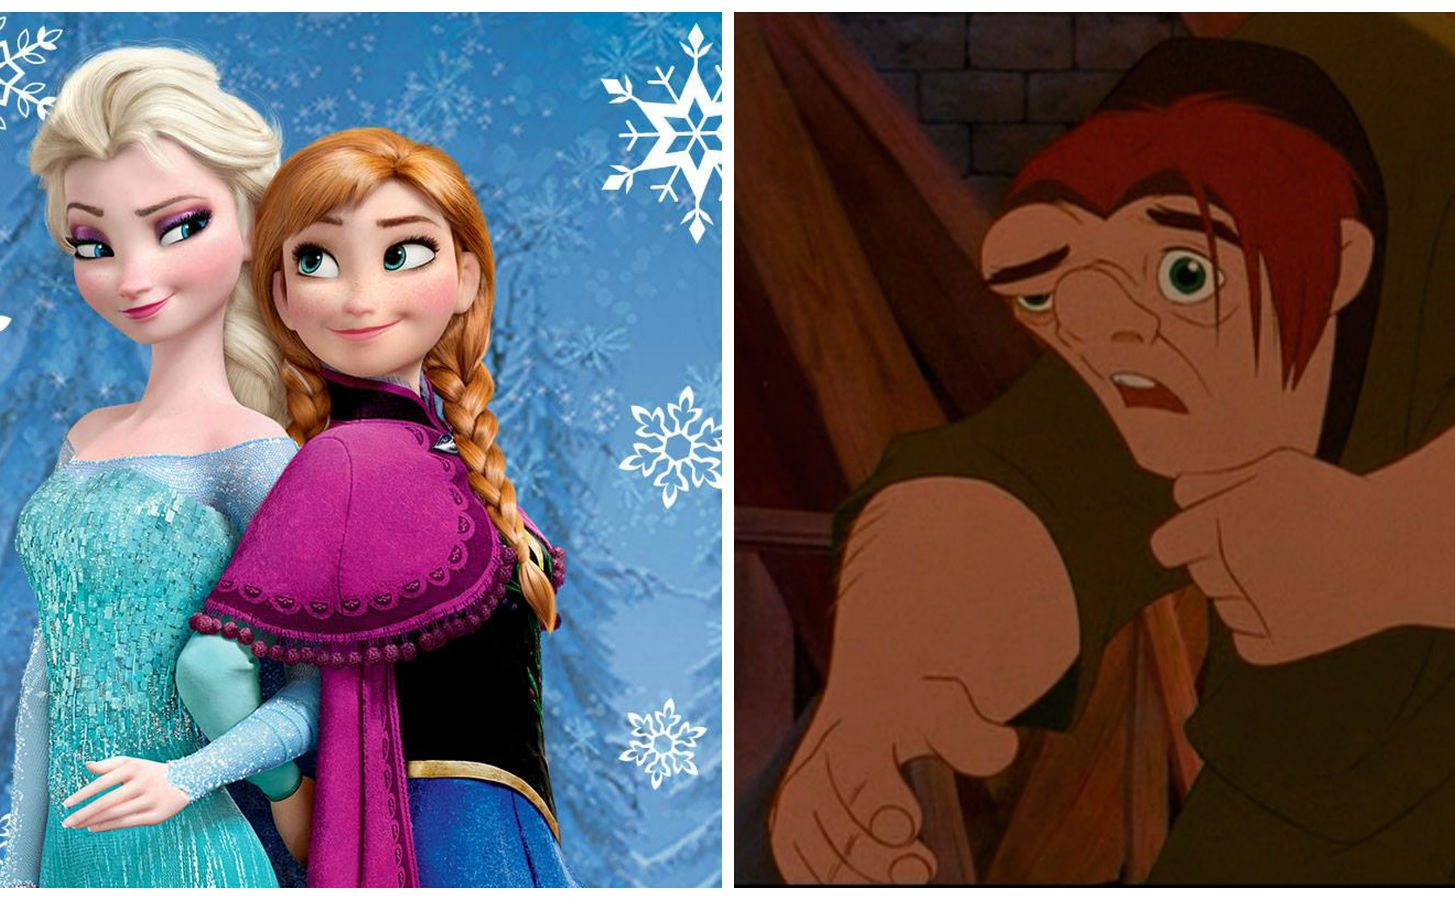 Snarcasm: Everyone in Disney Movies Is Related Because I Said So